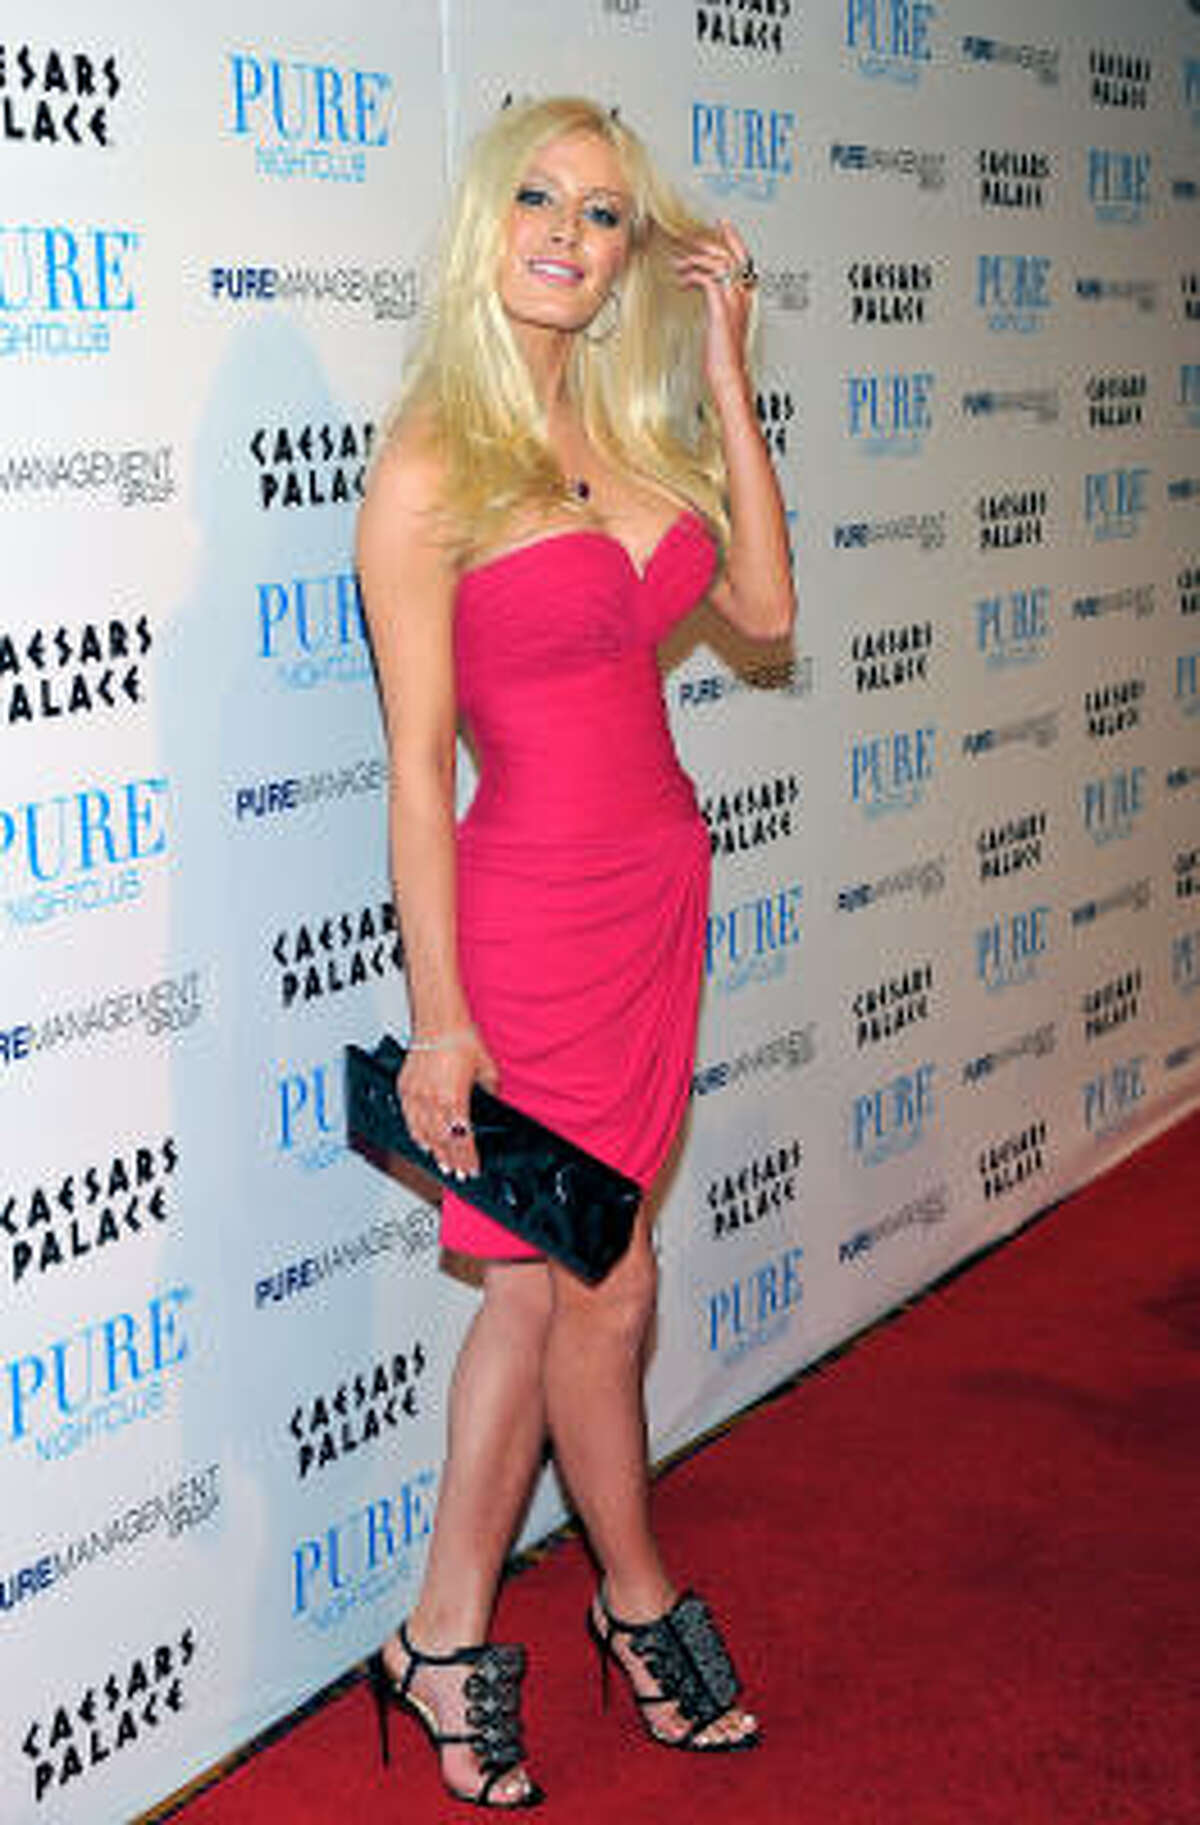 Remember when: Heidi Montag revealed all 10 plastic surgeries she had (in one day) to People magazine. For those keeping score at home, they were: Mini brow lift, Botox in forehead and frown area, Nose job revision, Fat injections in cheeks, nasolabial folds and lips, Chin reduction, Neck liposuction, Ears pinned back, Breast augmentation revision, Liposuction on waist, hips, outer and inner thighs, and Buttock augmentation.